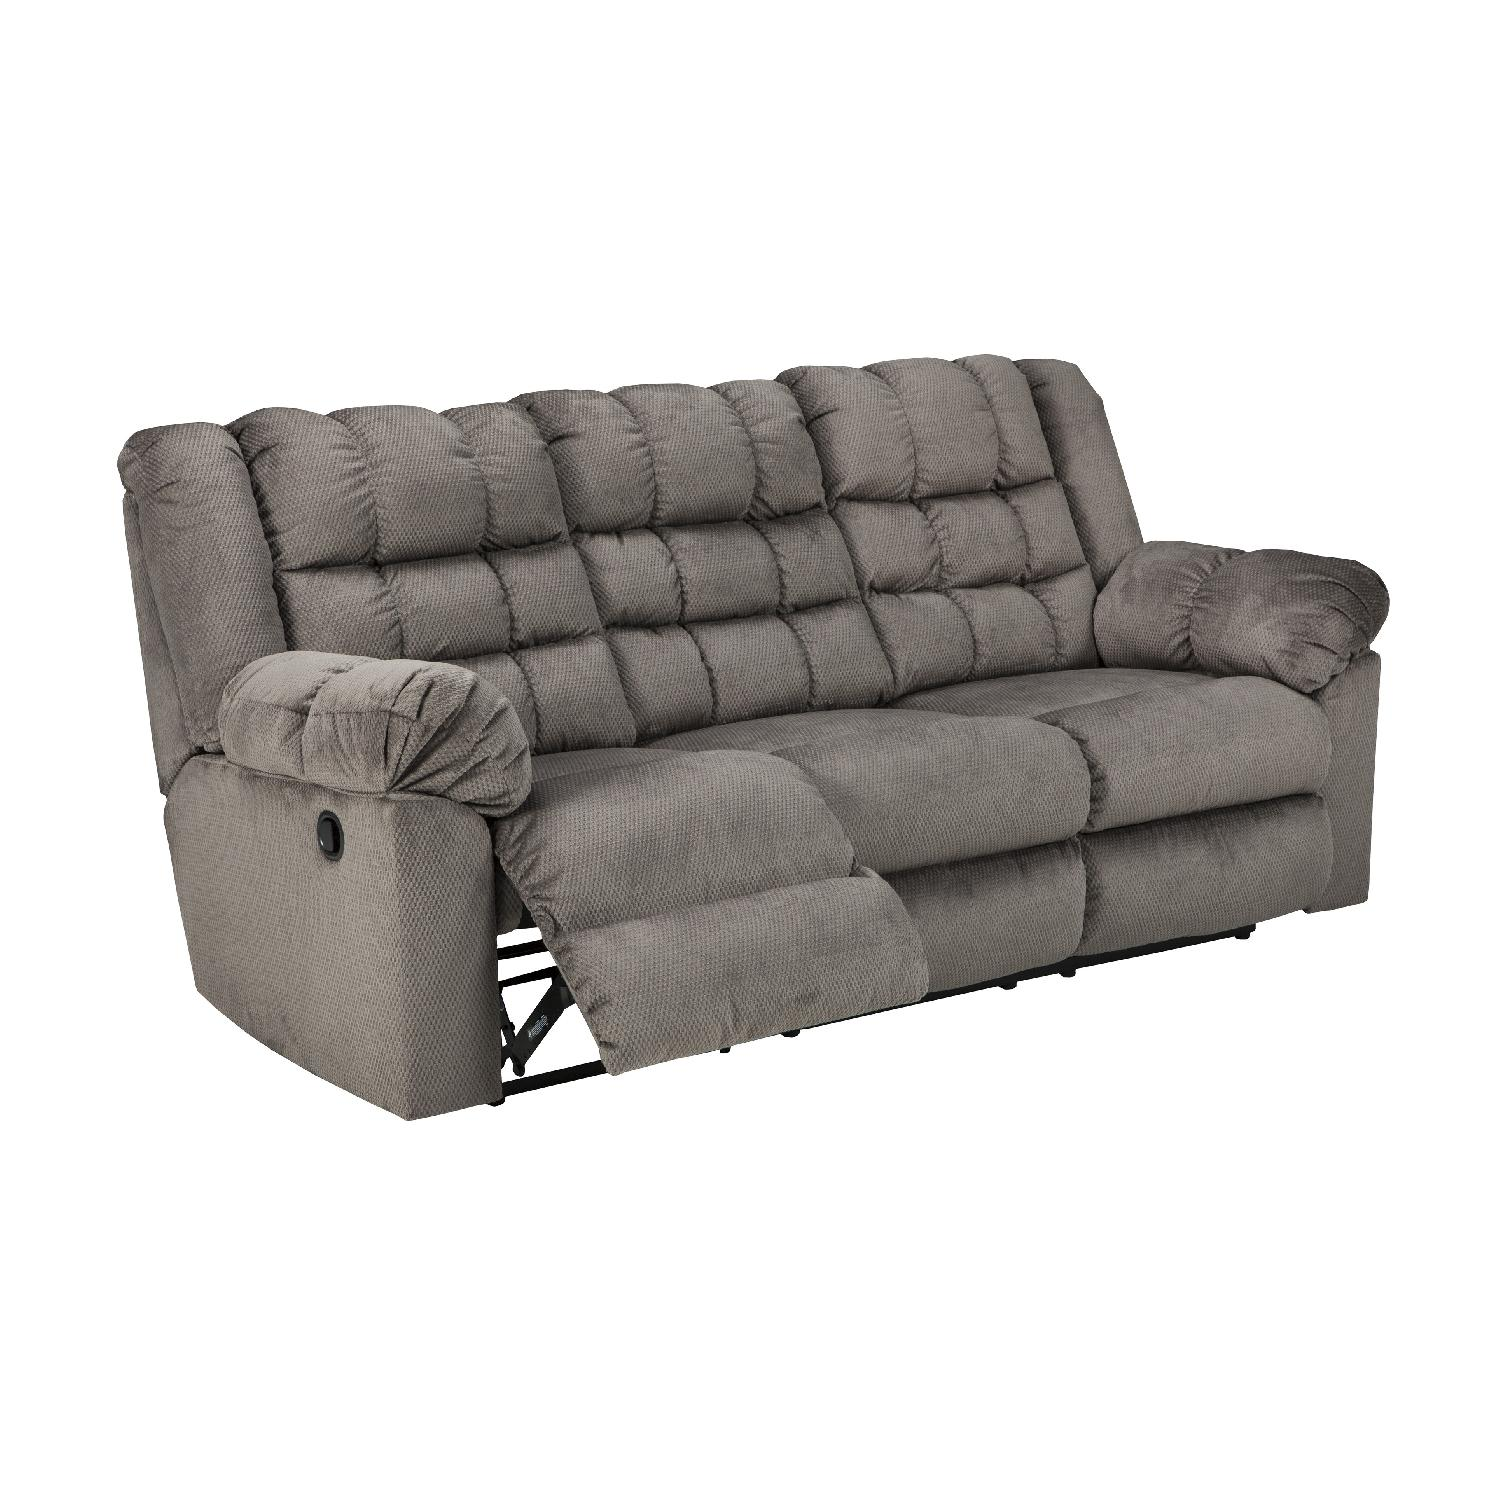 lauren ashley 60 zero wall sofa recliner fabrics for sofas and chairs 39s contemporary reclining in charcoal color